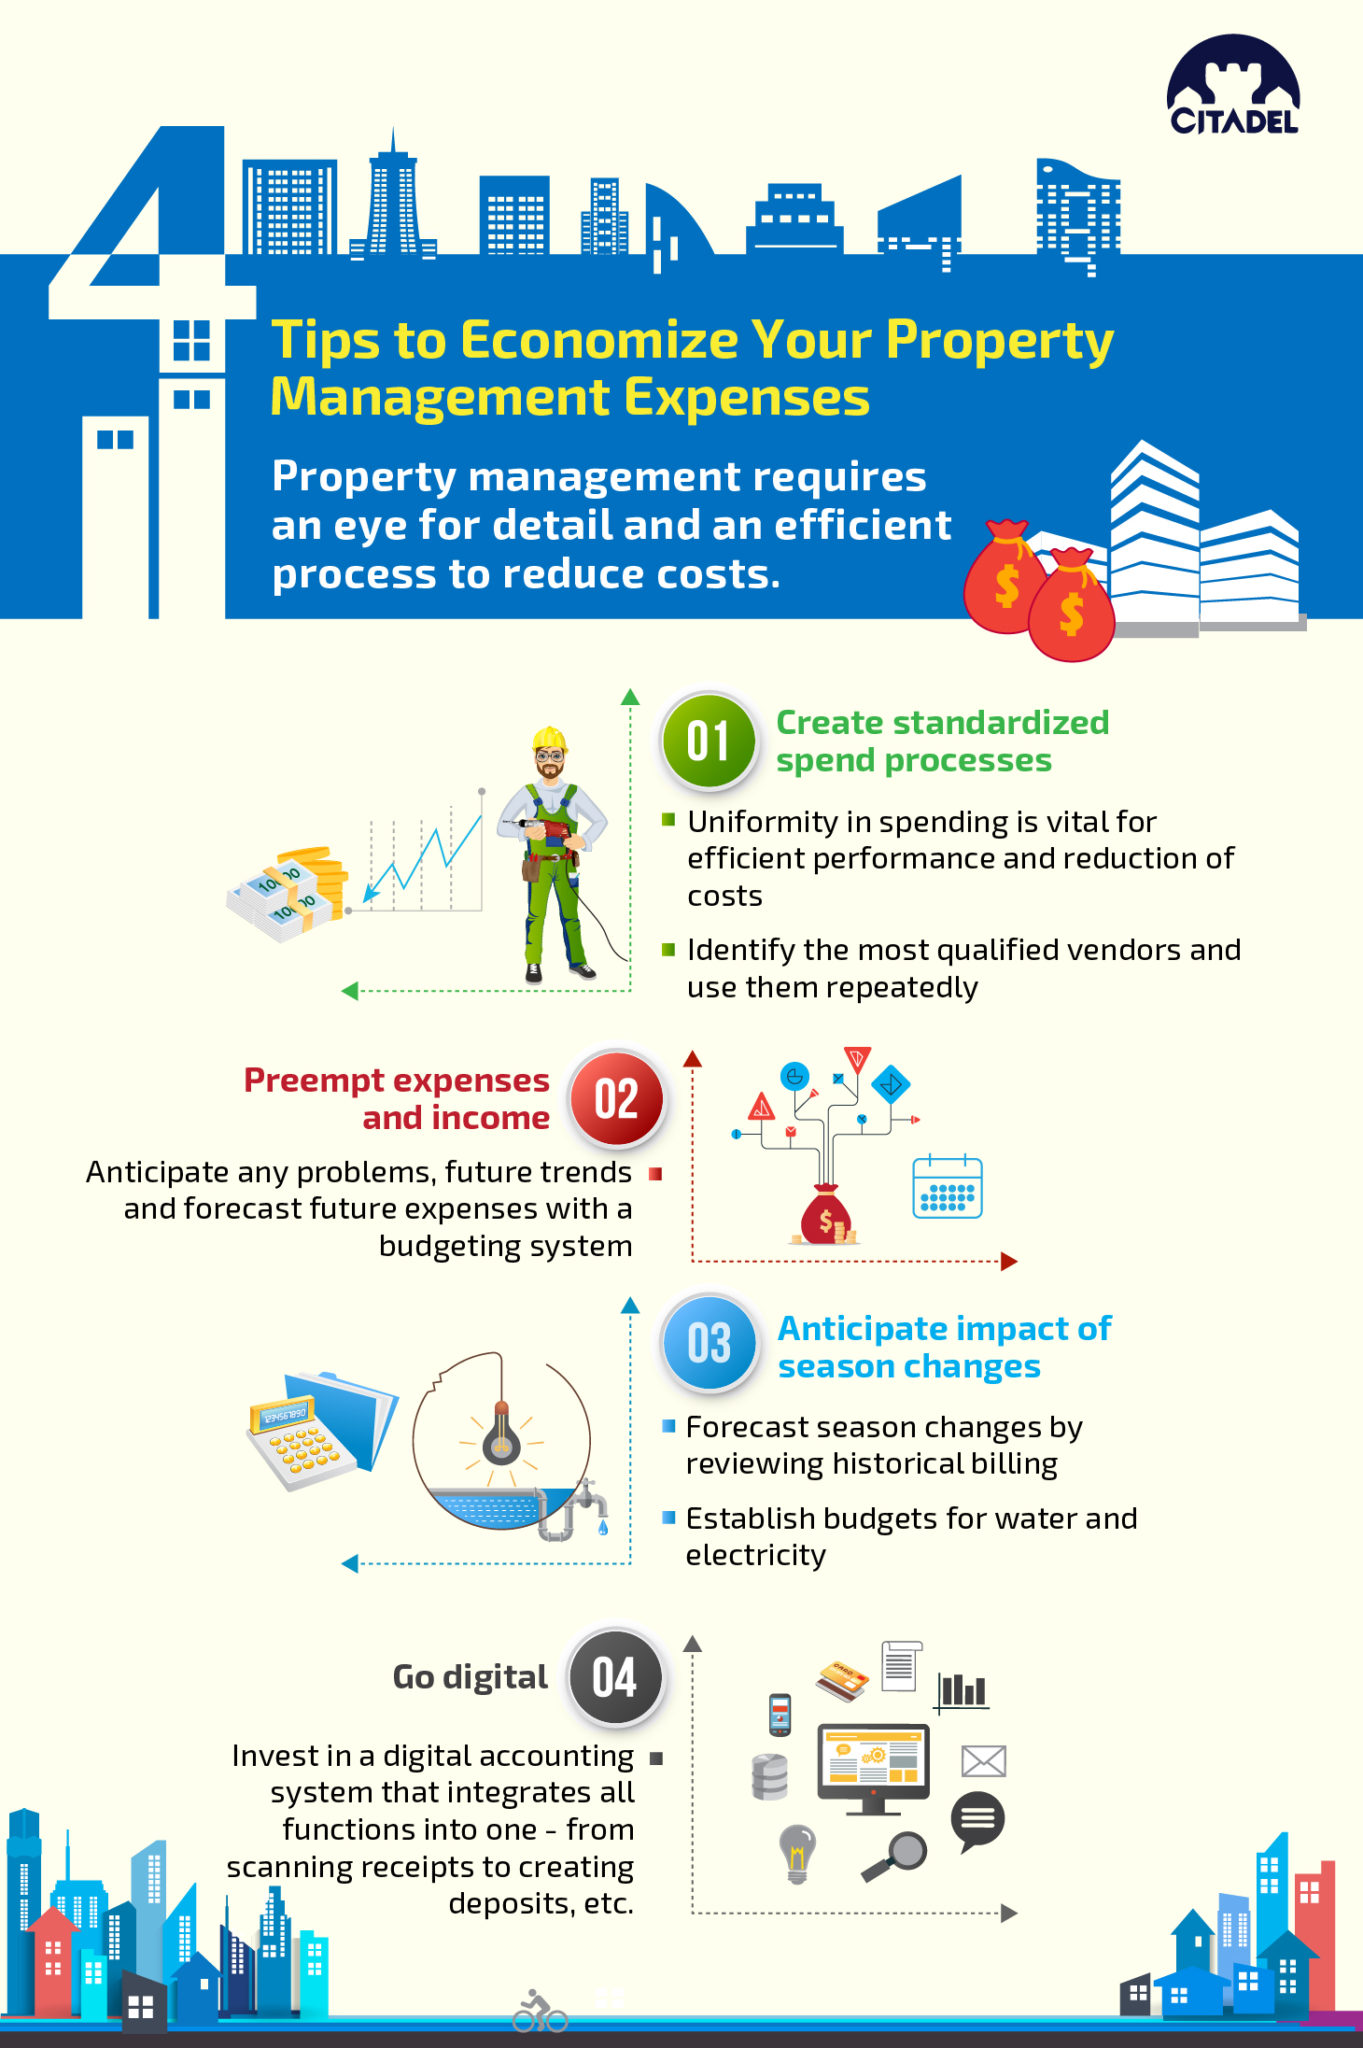 Tips to Economize Your Property Management Expenses